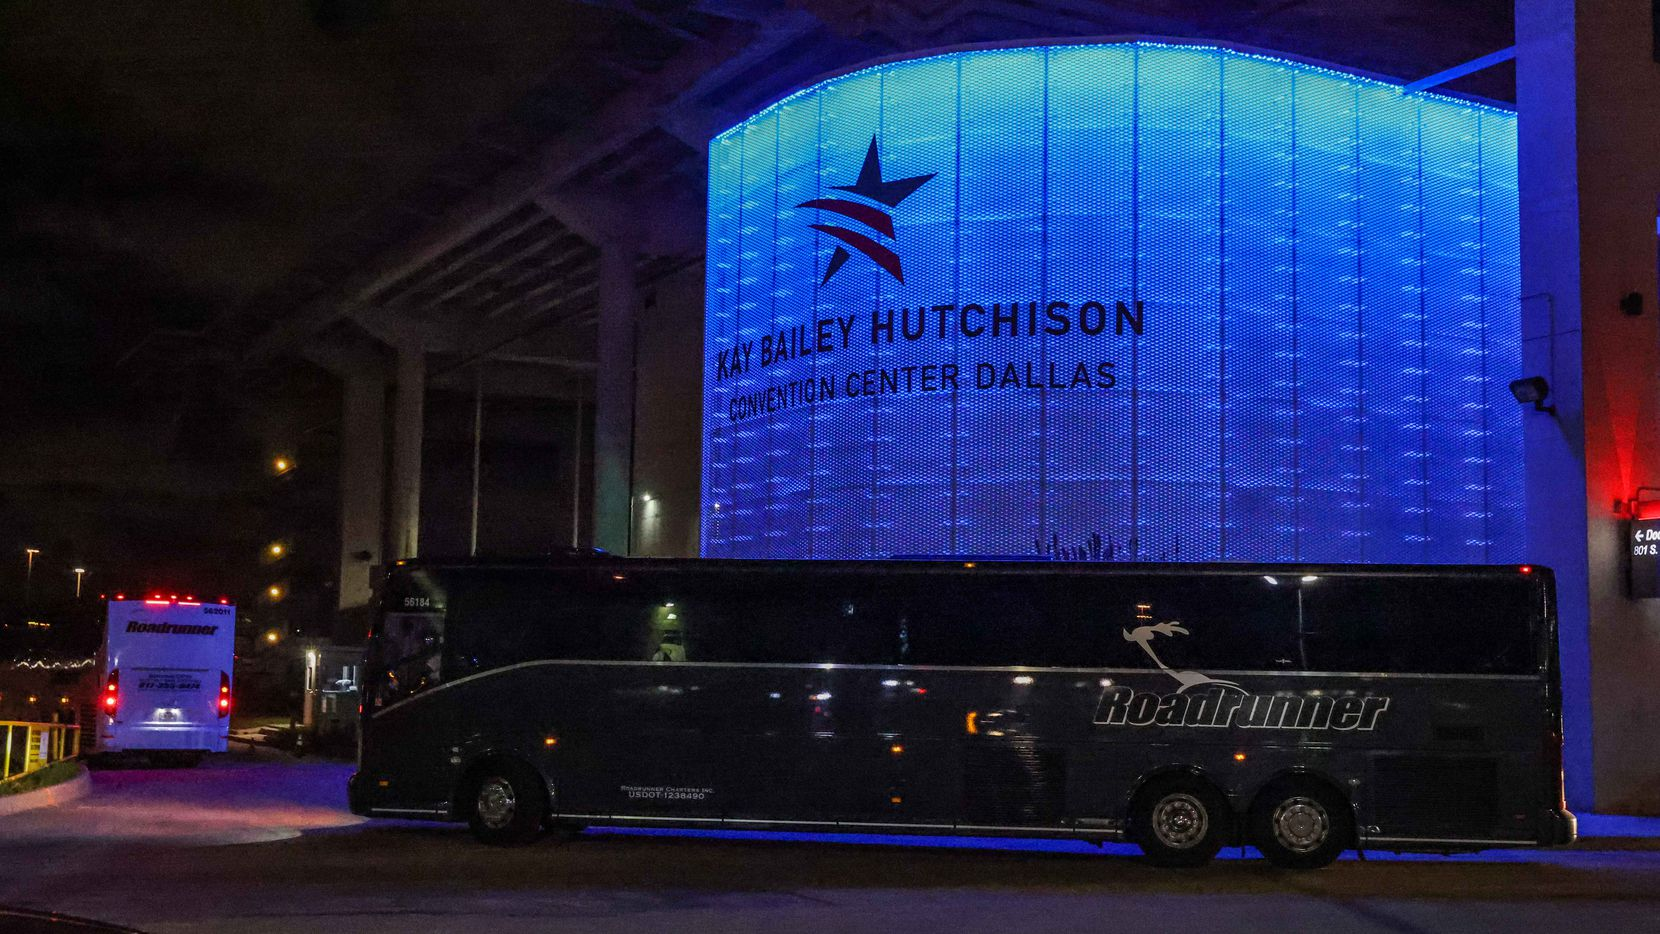 Four charter buses arrive at the Kay Bailey Hutchison Convention Center in Dallas on Wednesday, March 17, 2021, escorted by Federal Protective Service Police. The U.S. Department of Health and Human Services confirmed Tuesday that the convention center will serve as an emergency intake site to hold teens who have arrived at the U.S.-Mexico border starting Wednesday to decrease overcrowding at Customs and Border Protection facilities.